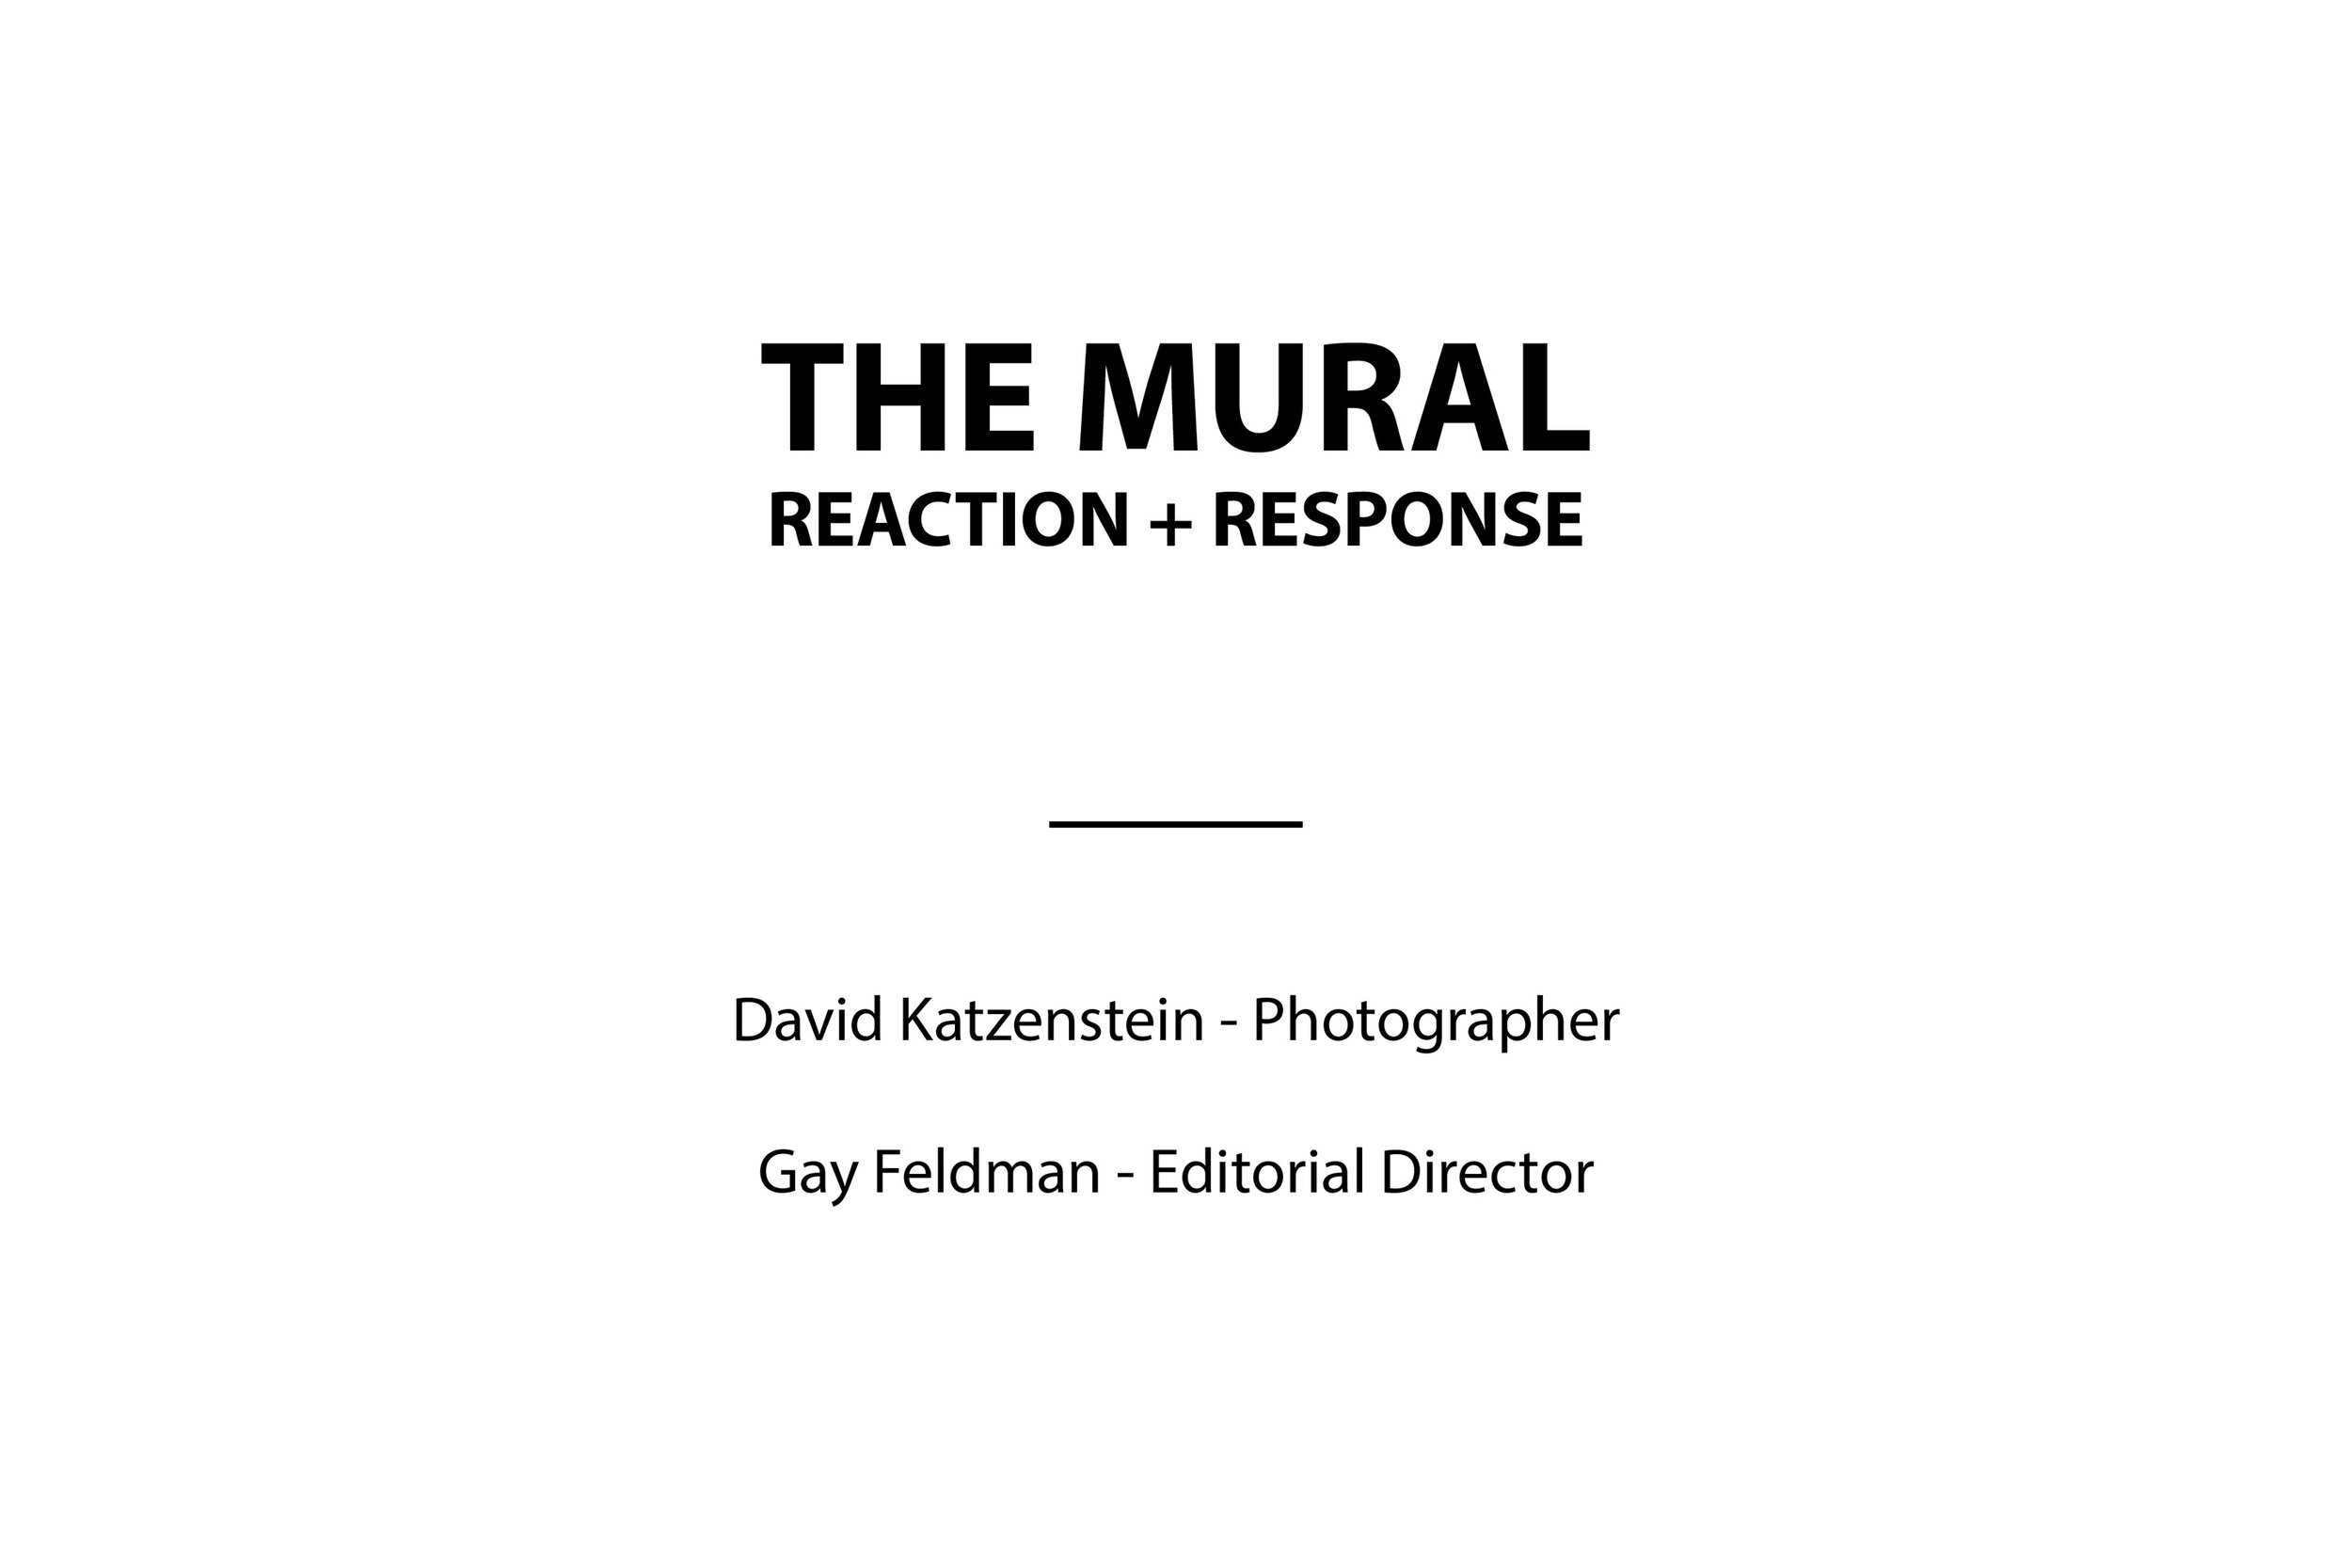 The-Mural-Text-Pages-1.jpg